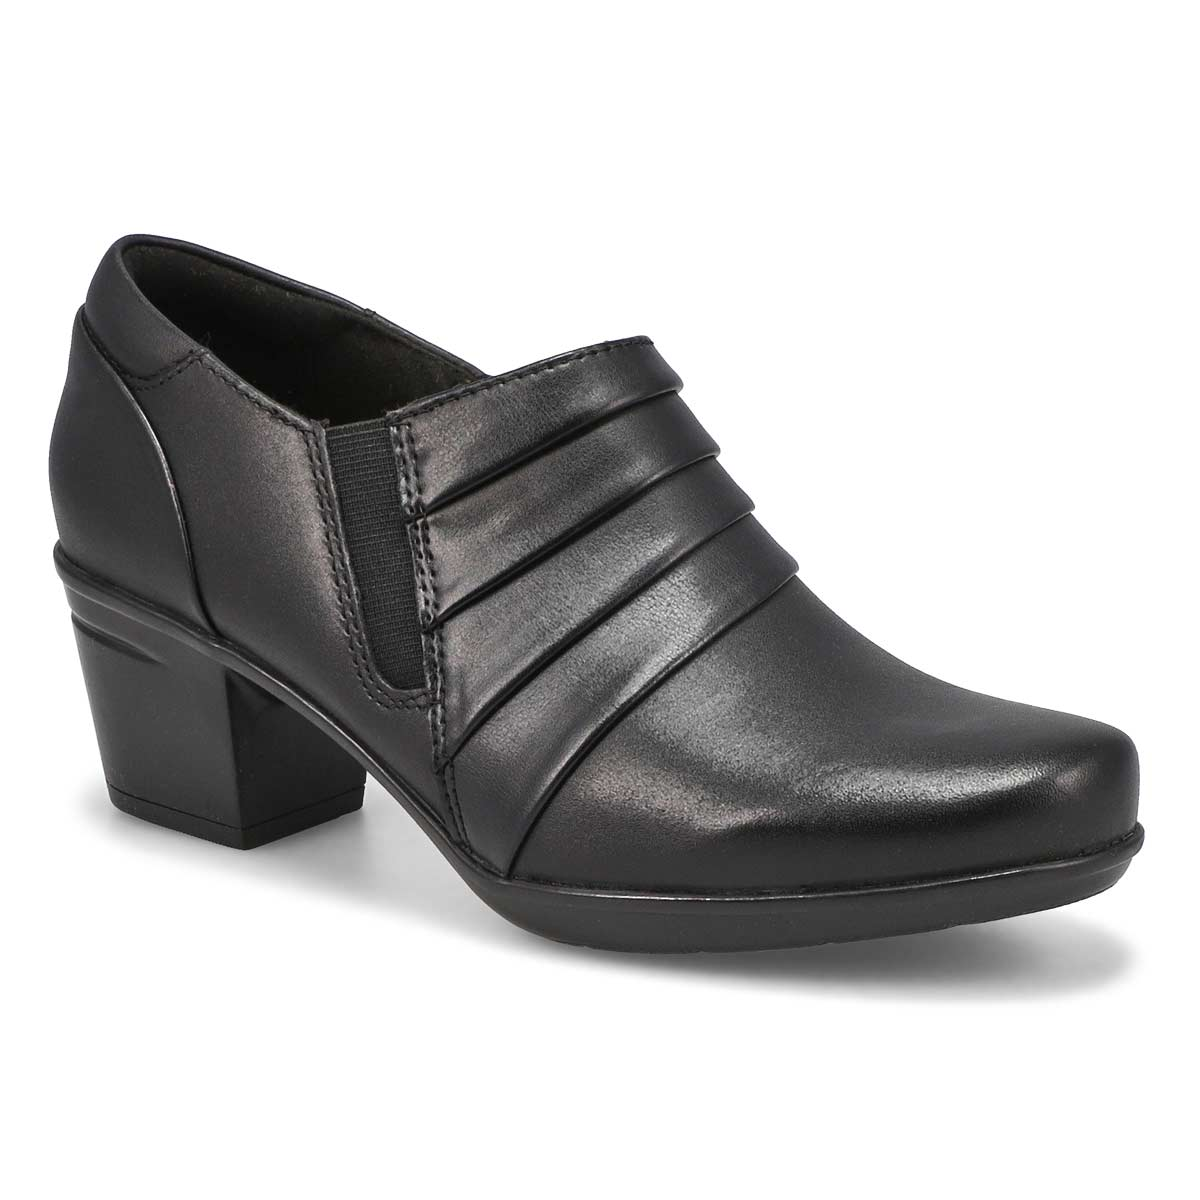 Women's Emslie Guide Dress Heel - Black